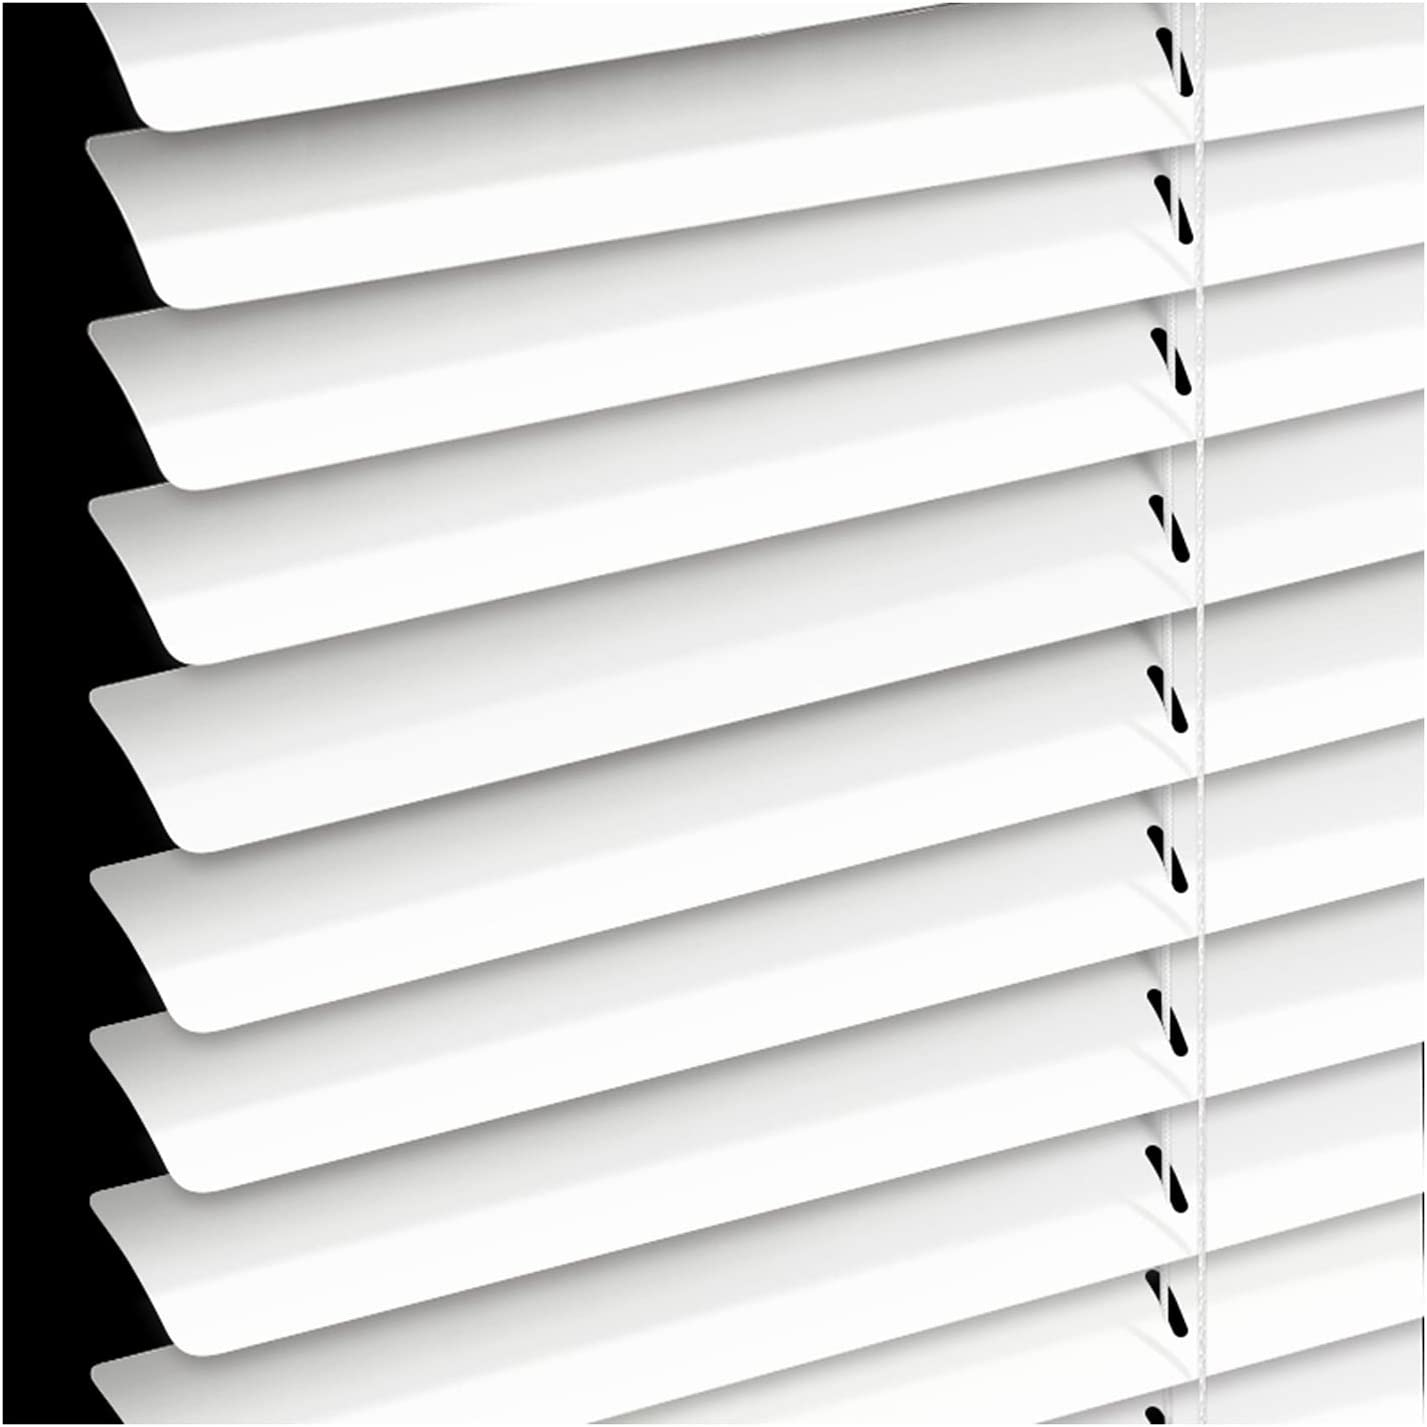 GUOWEI Venetian Blinds Indoor Shading Curt 67% OFF Albuquerque Mall of fixed price Decorations